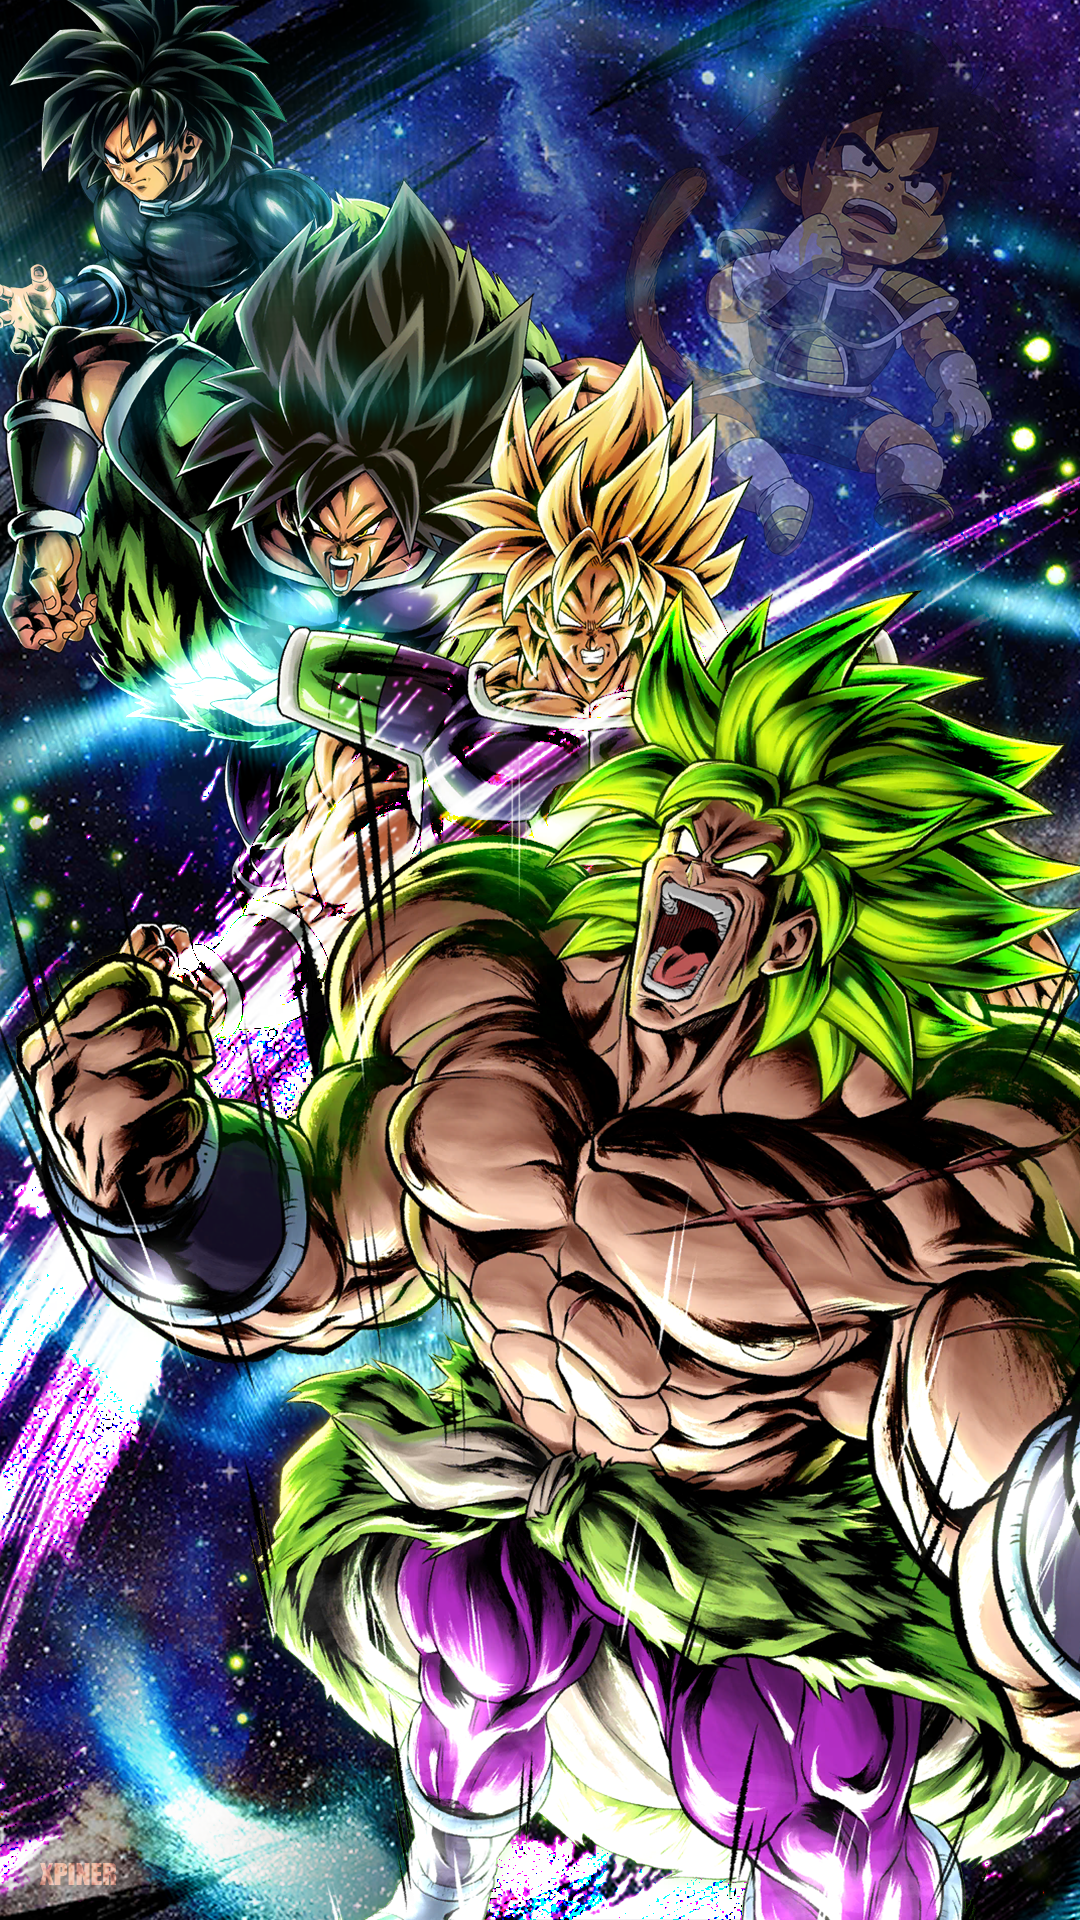 Dbs Broly Wallpapers Wallpaper Cave